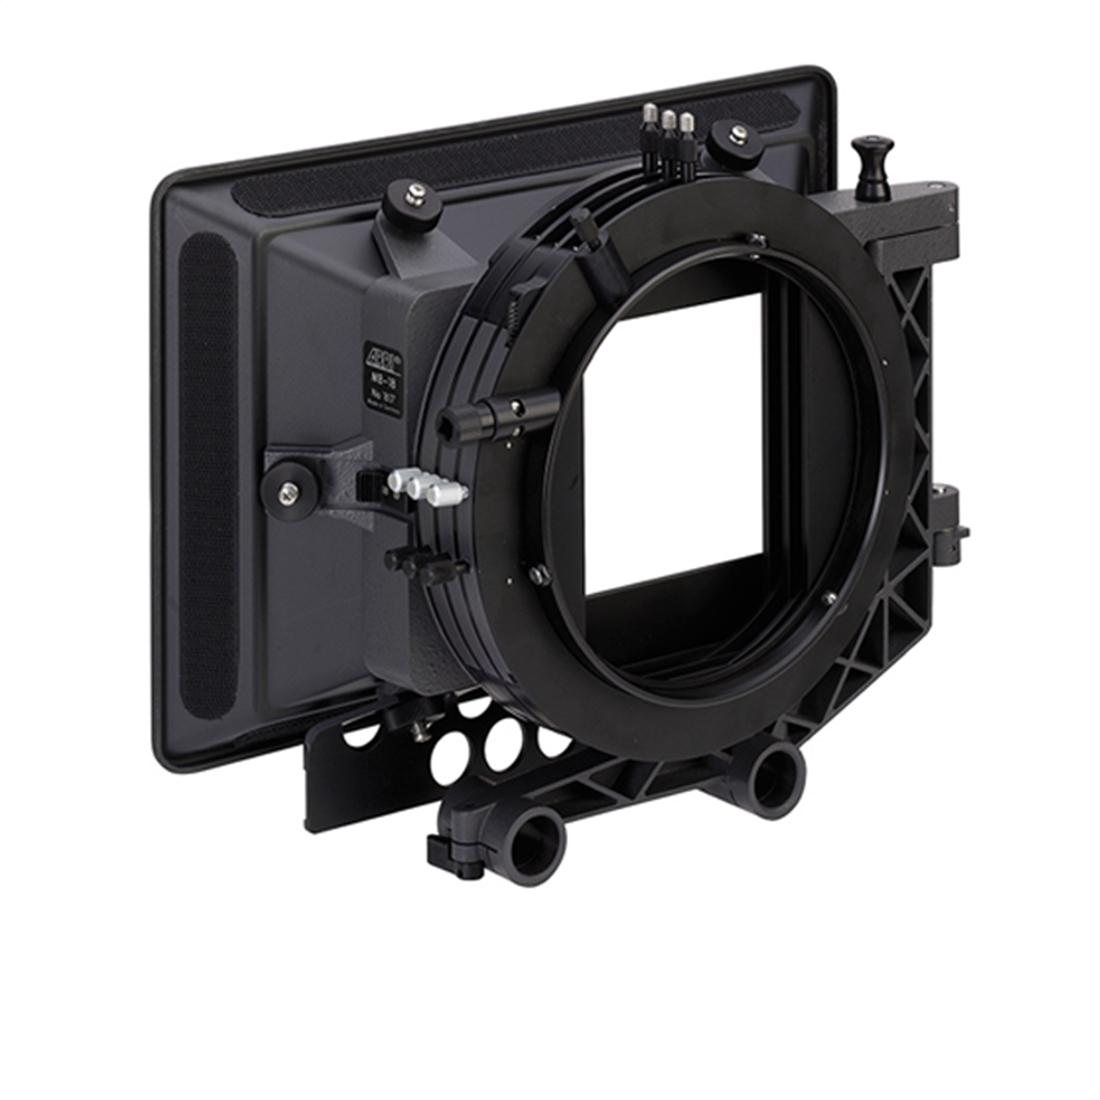 MATTEBOX STUDIO ARRI MB-18